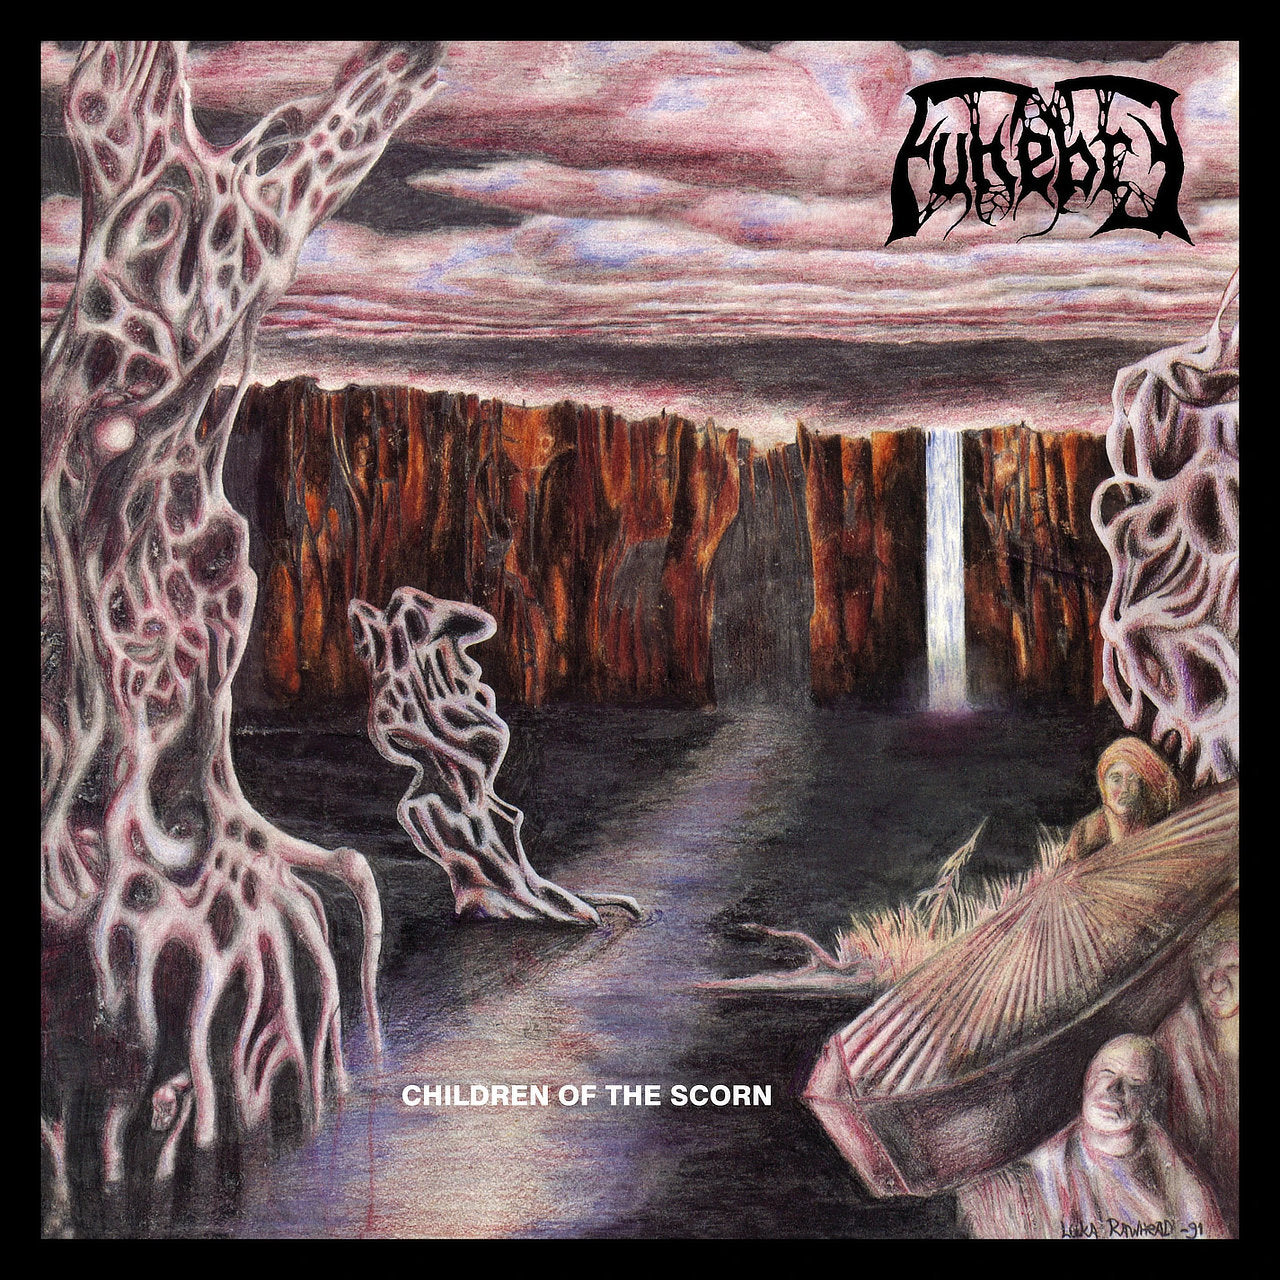 Funebre - Children of the Scorn (2019 Reissue) (LP)